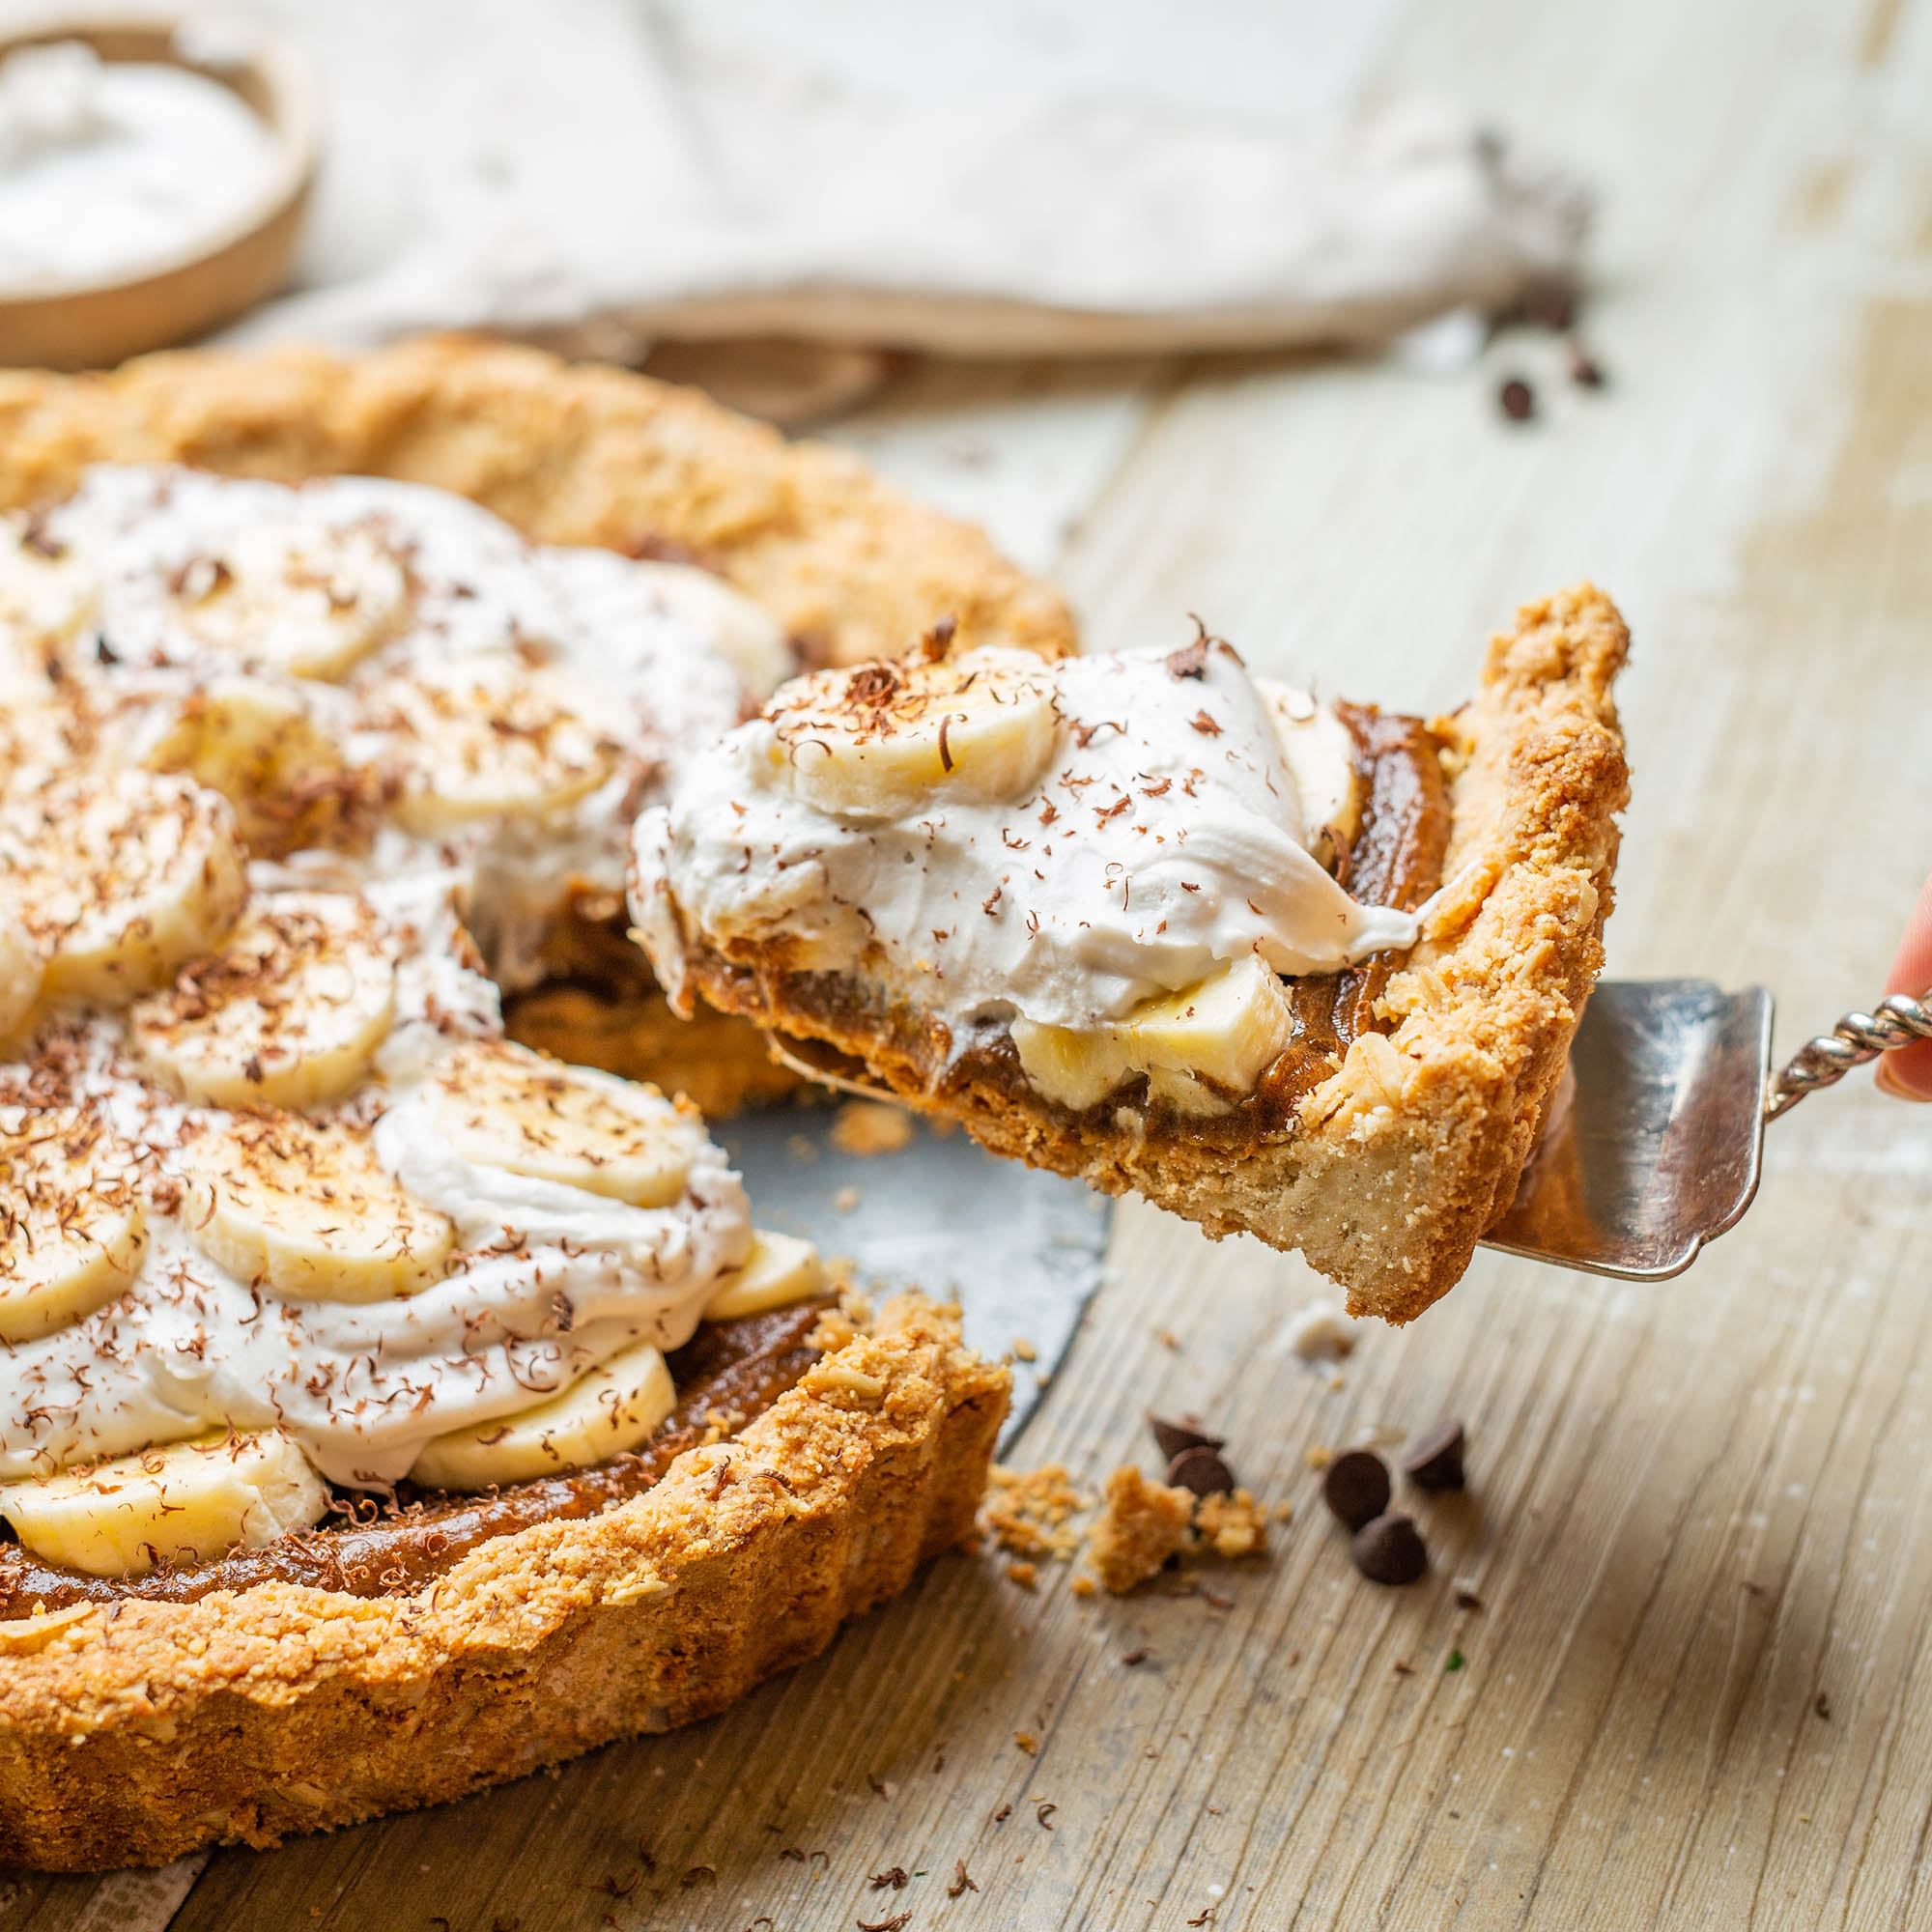 Vegan Refined Sugar Free Almond Banoffee Pie